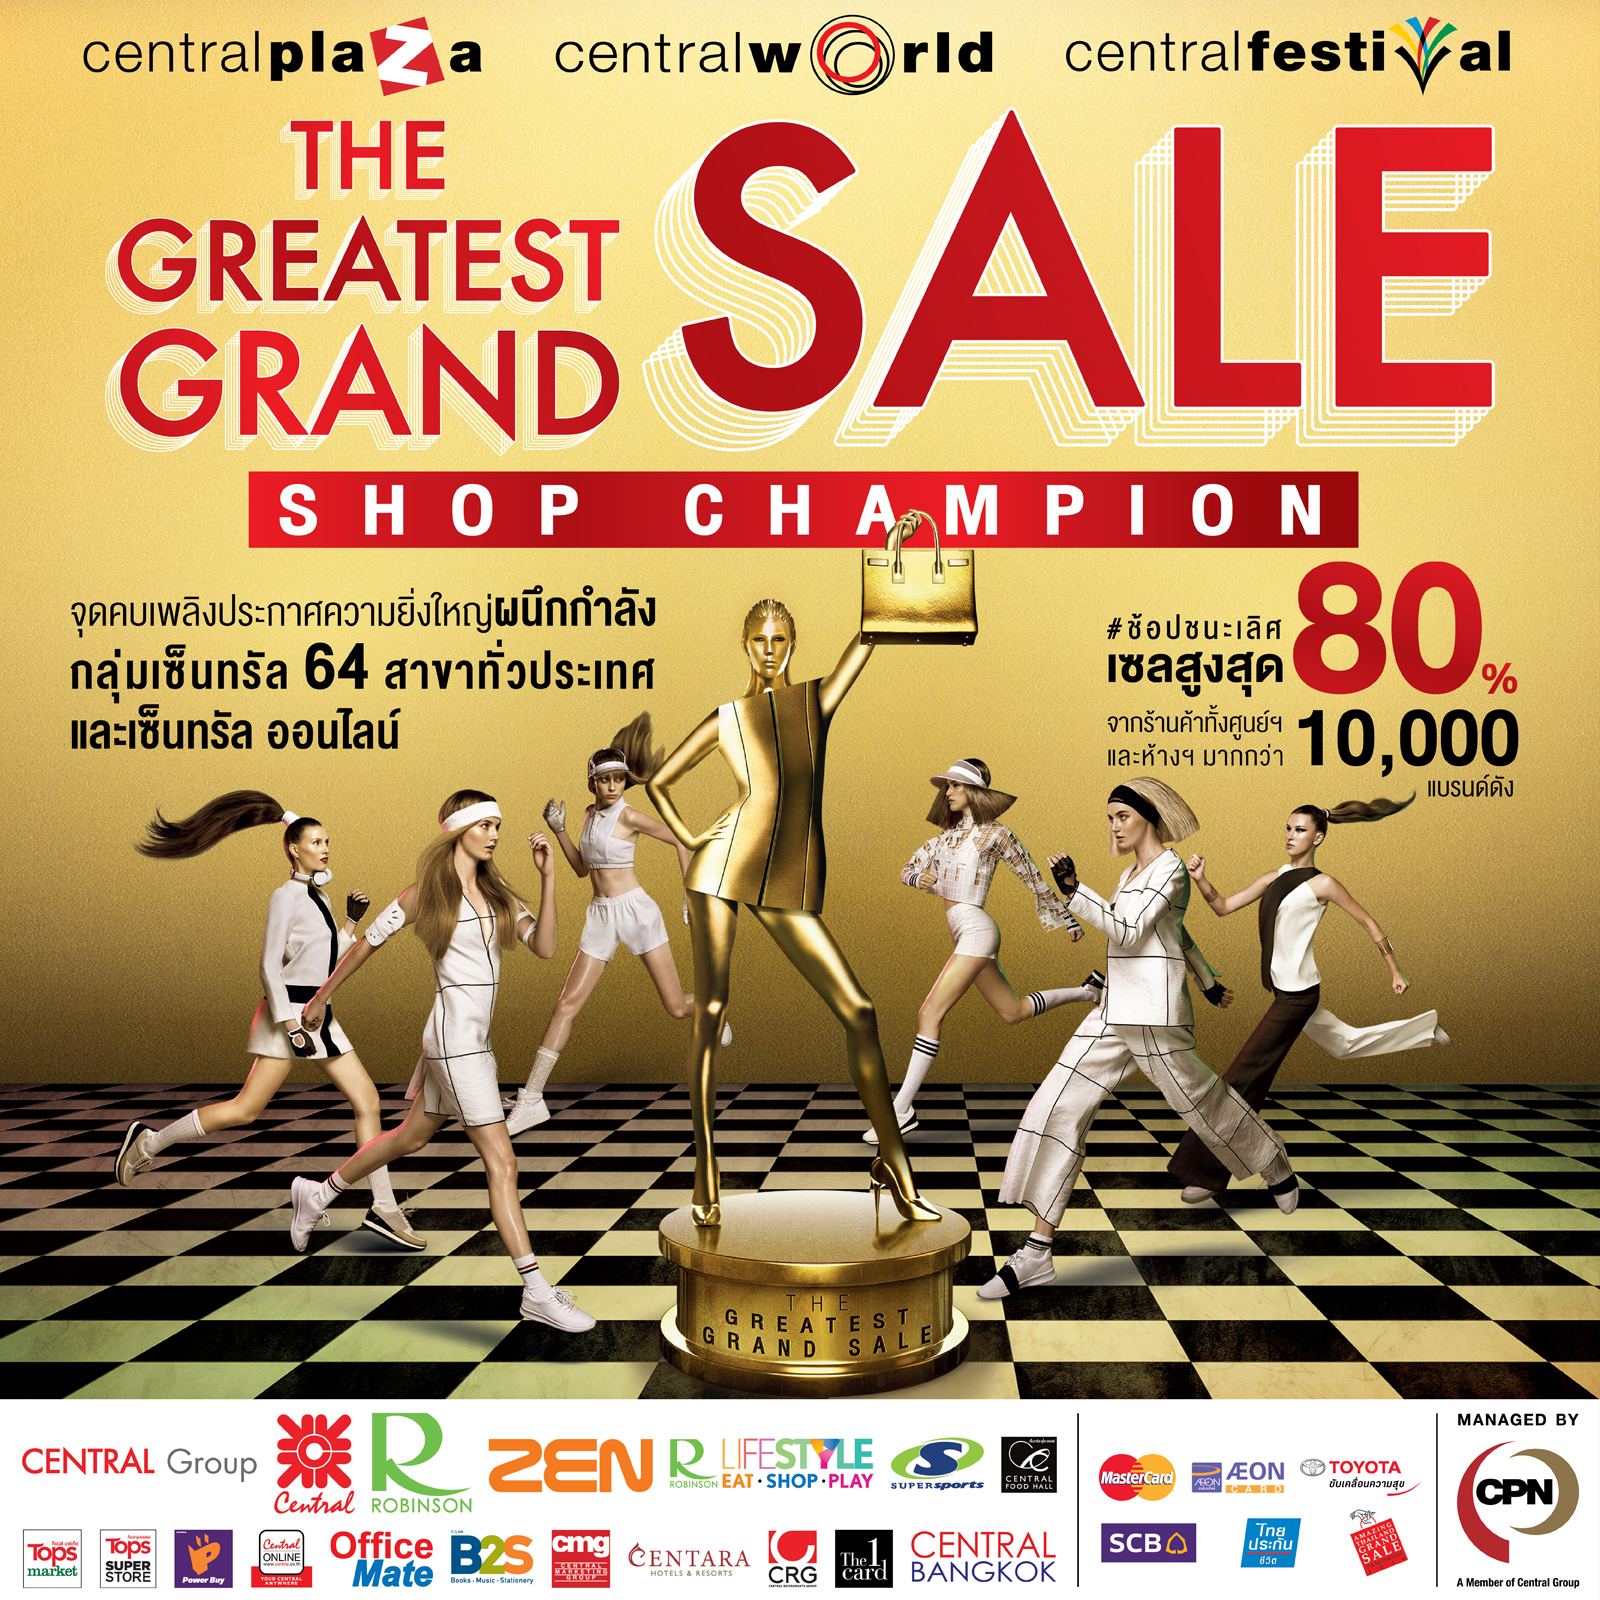 Promotions THE GREATEST GRAND SALE 2016 Shop Champion @ Central Plaza, Central World and Central Festival